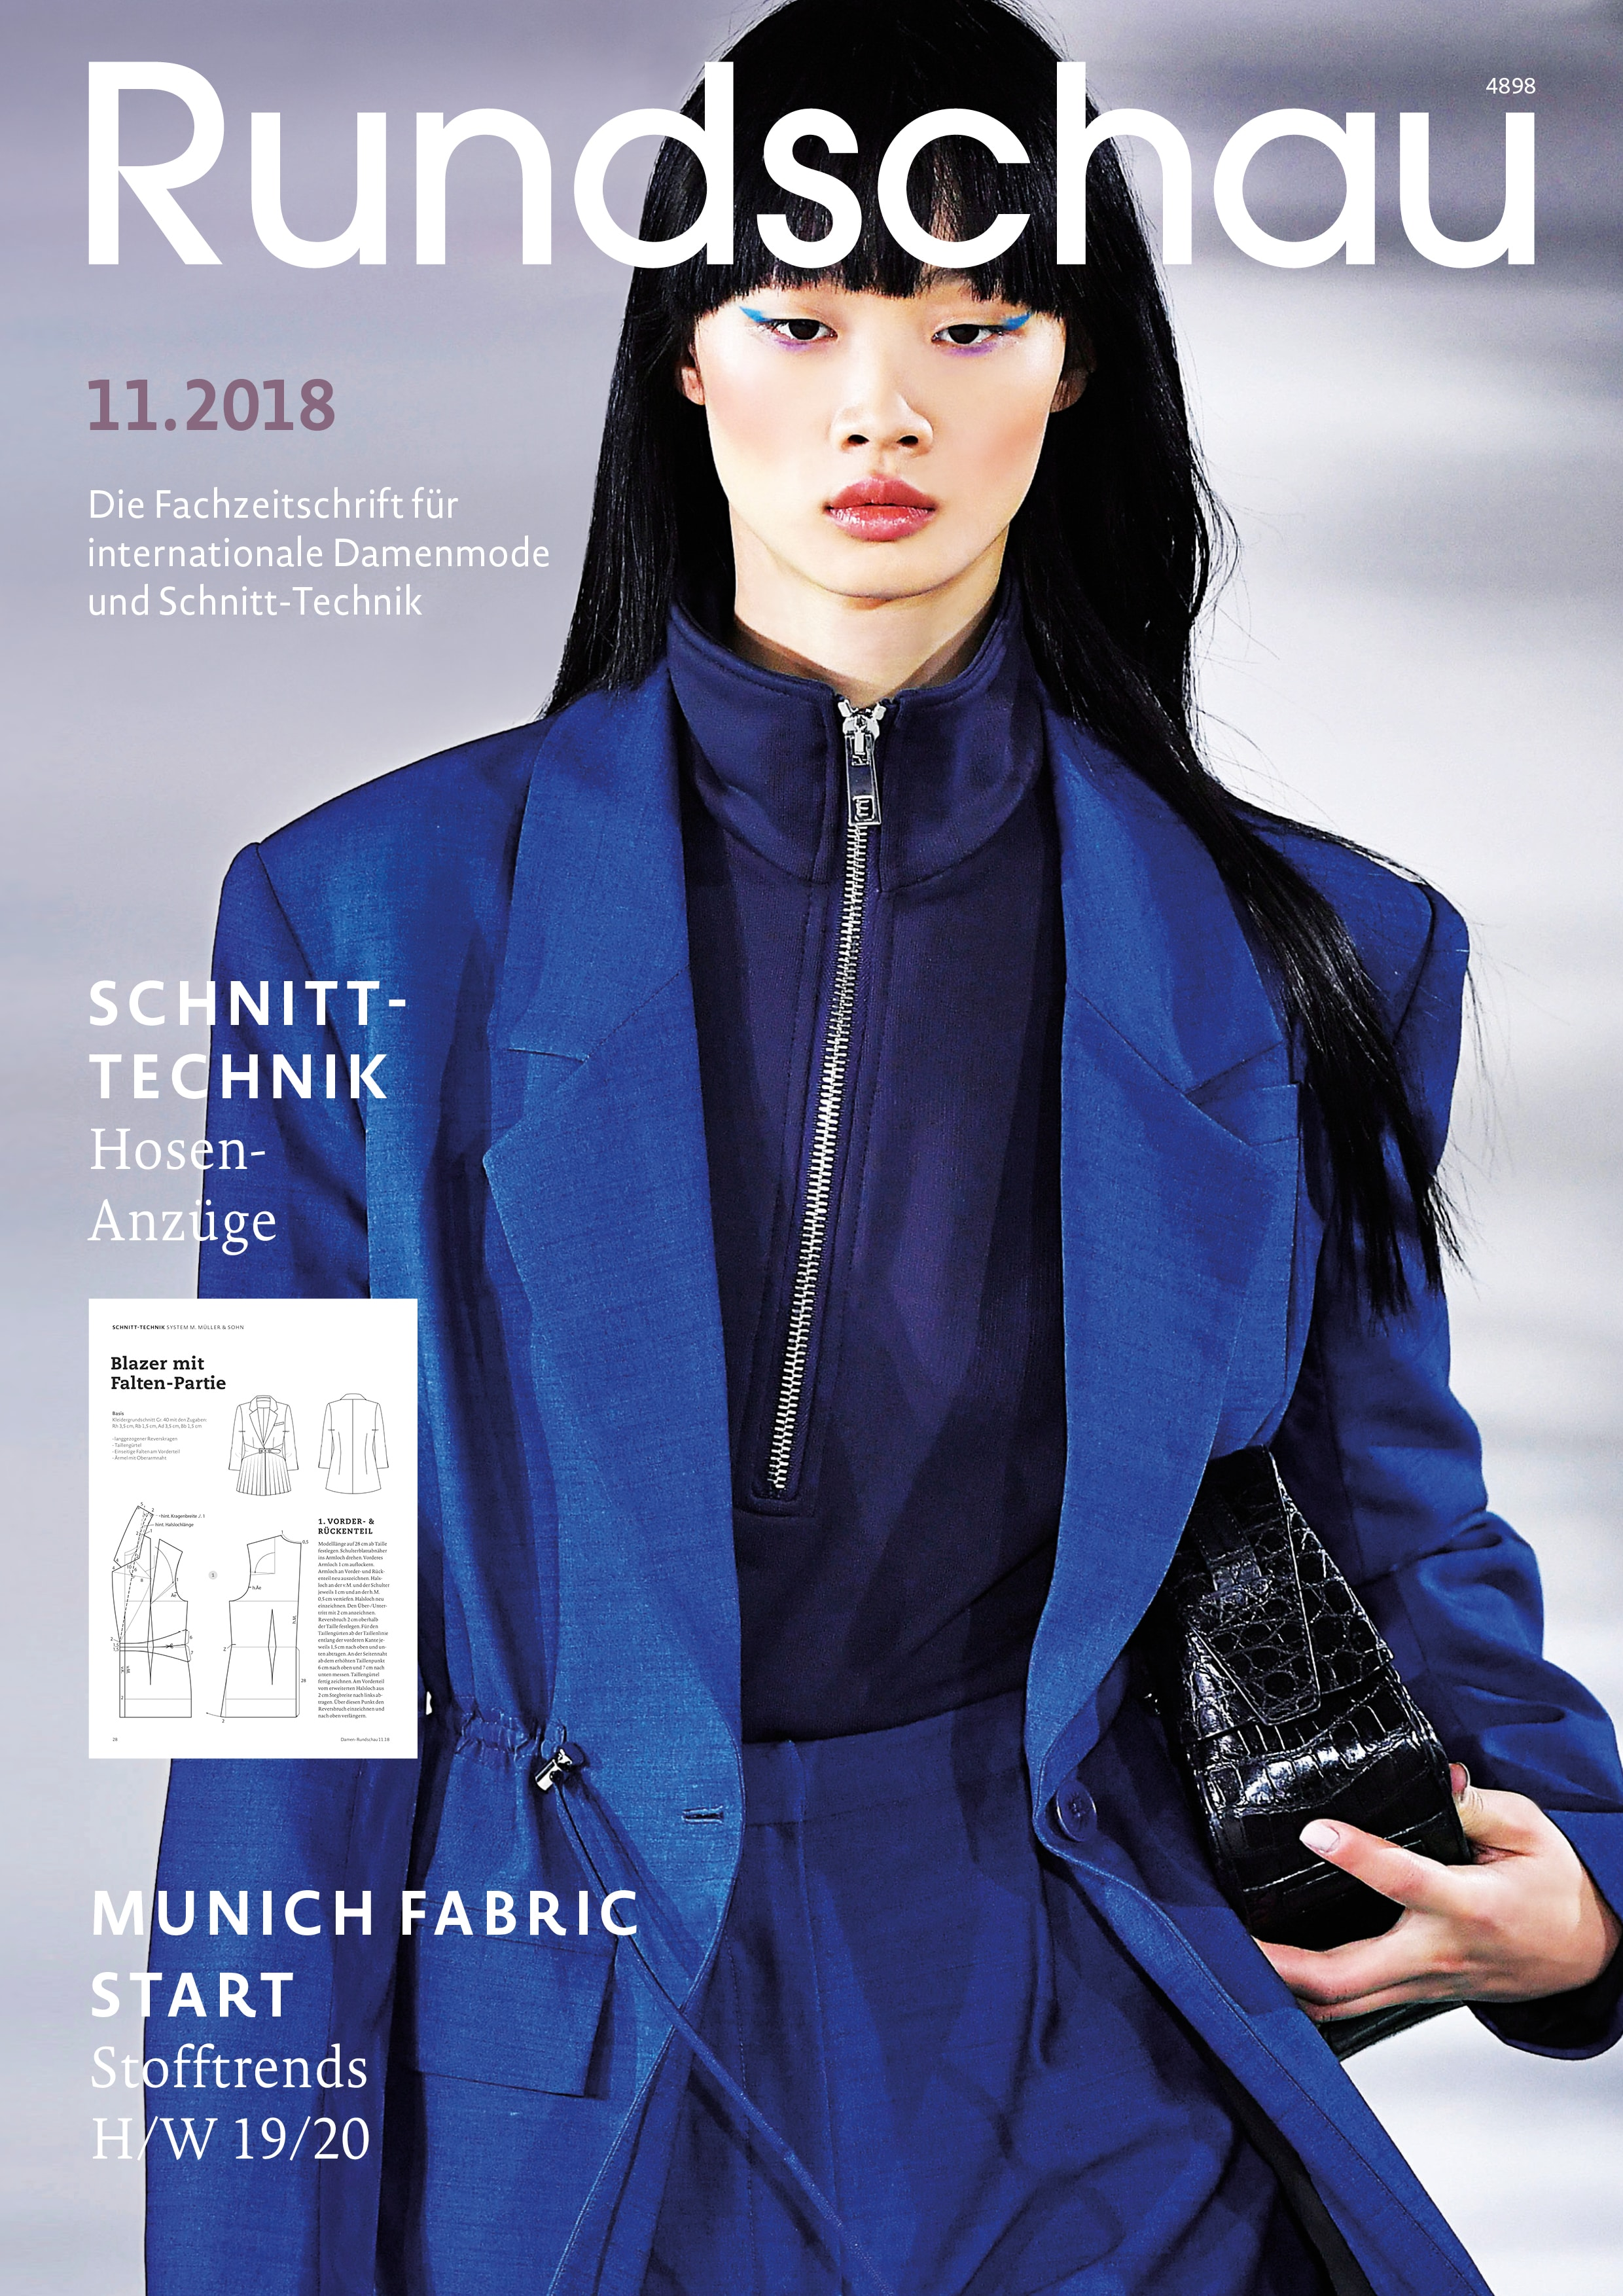 Produkt: Rundschau für Internationale Damenmode 11.2018